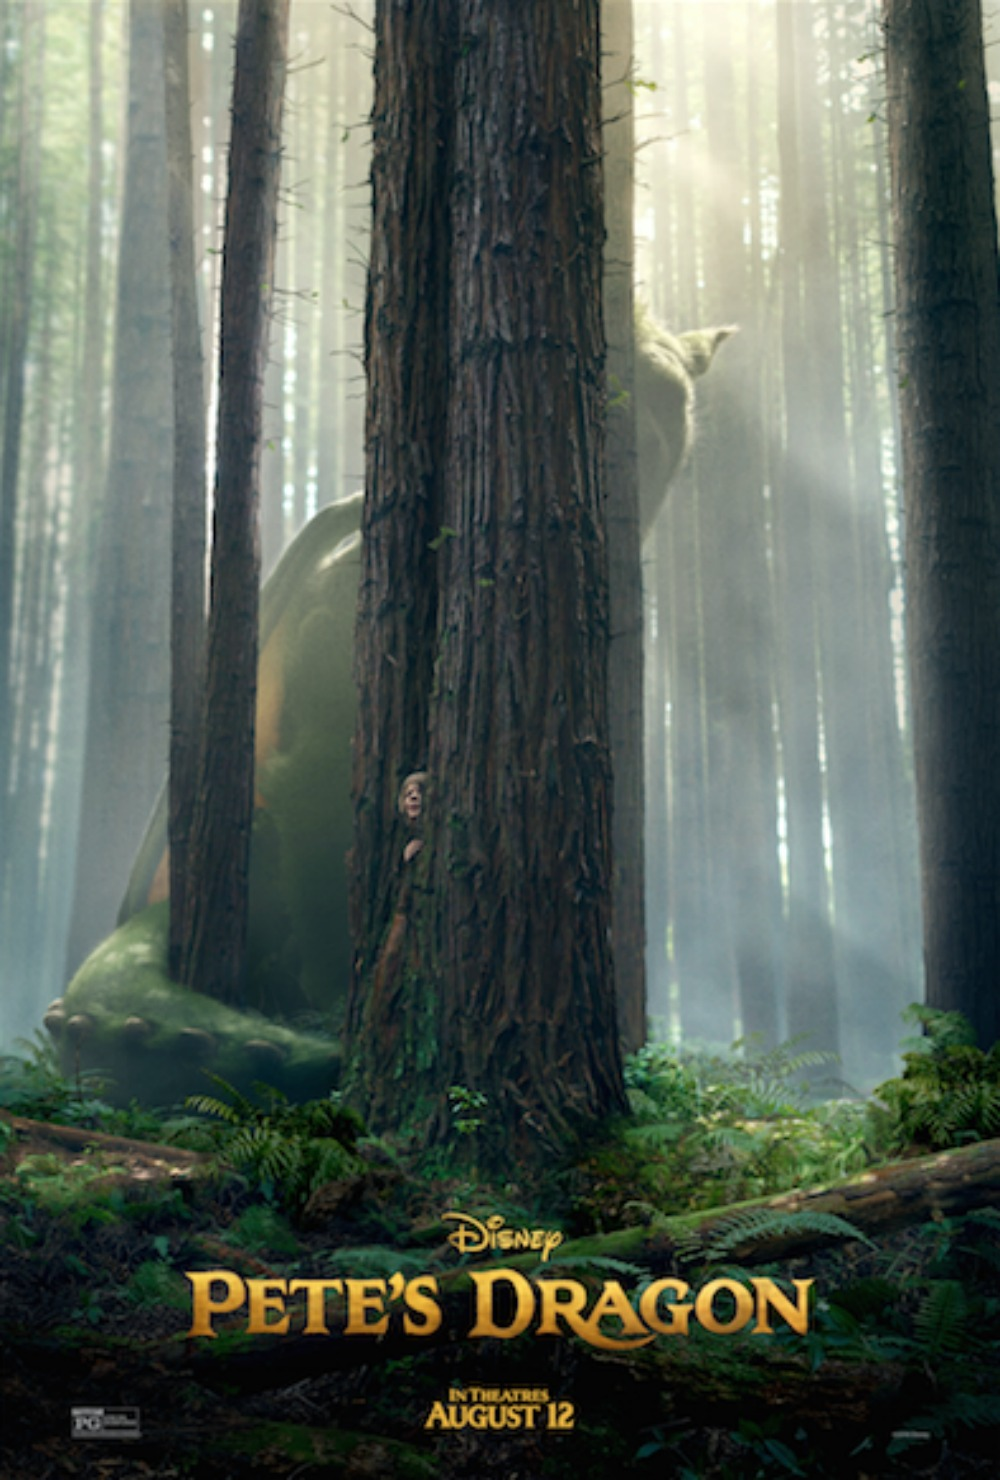 Disney's Pete's Dragon Poster and Trailer